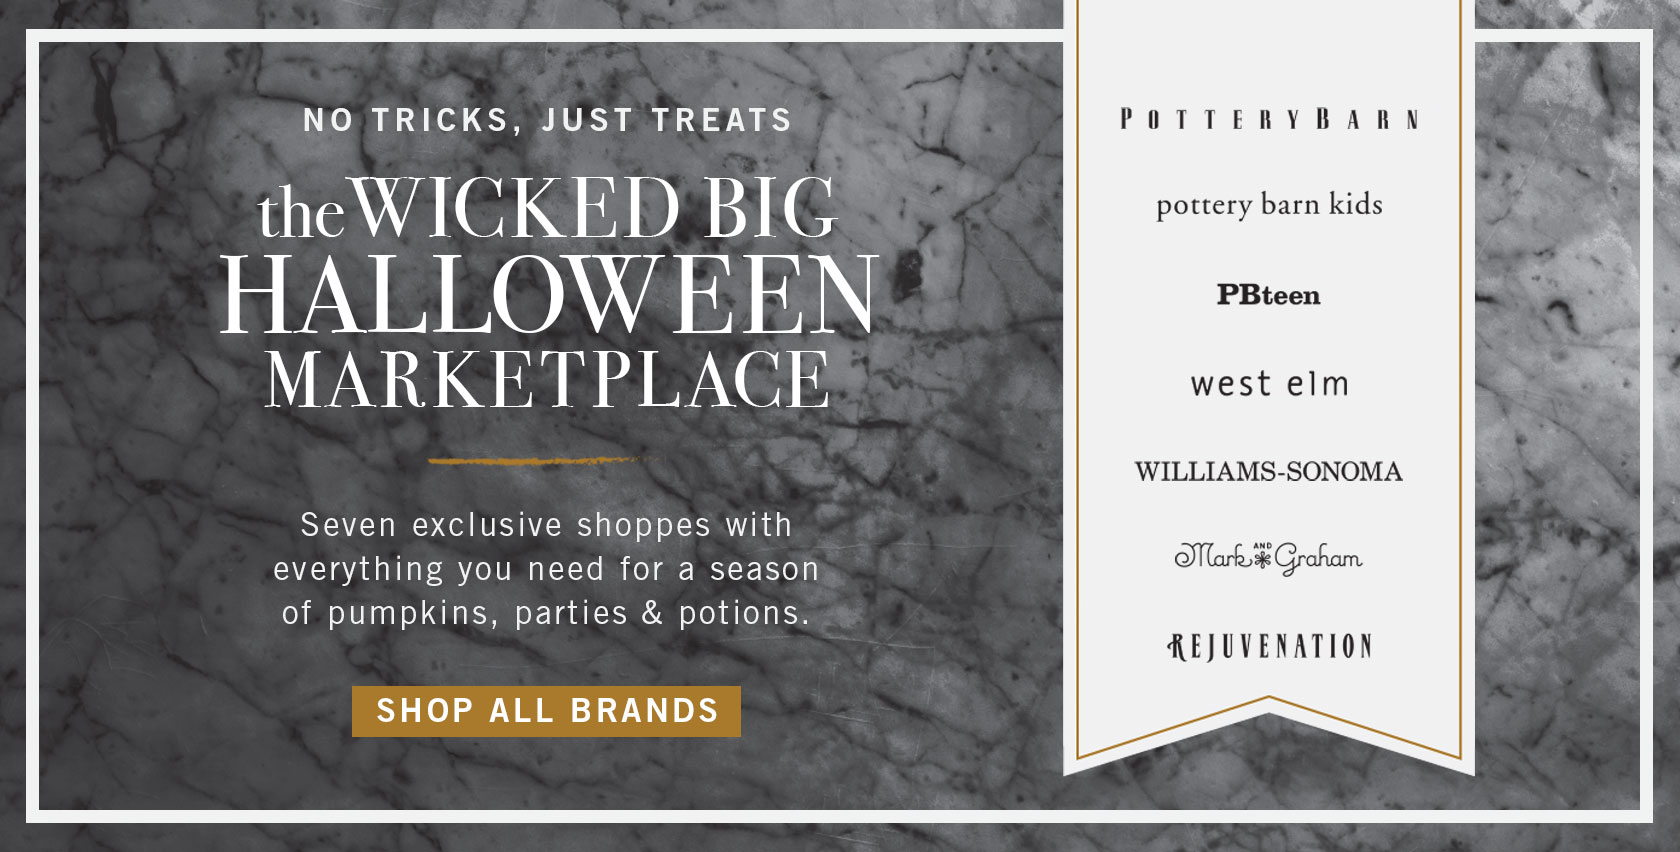 The Wicked Big Halloween Marketplace